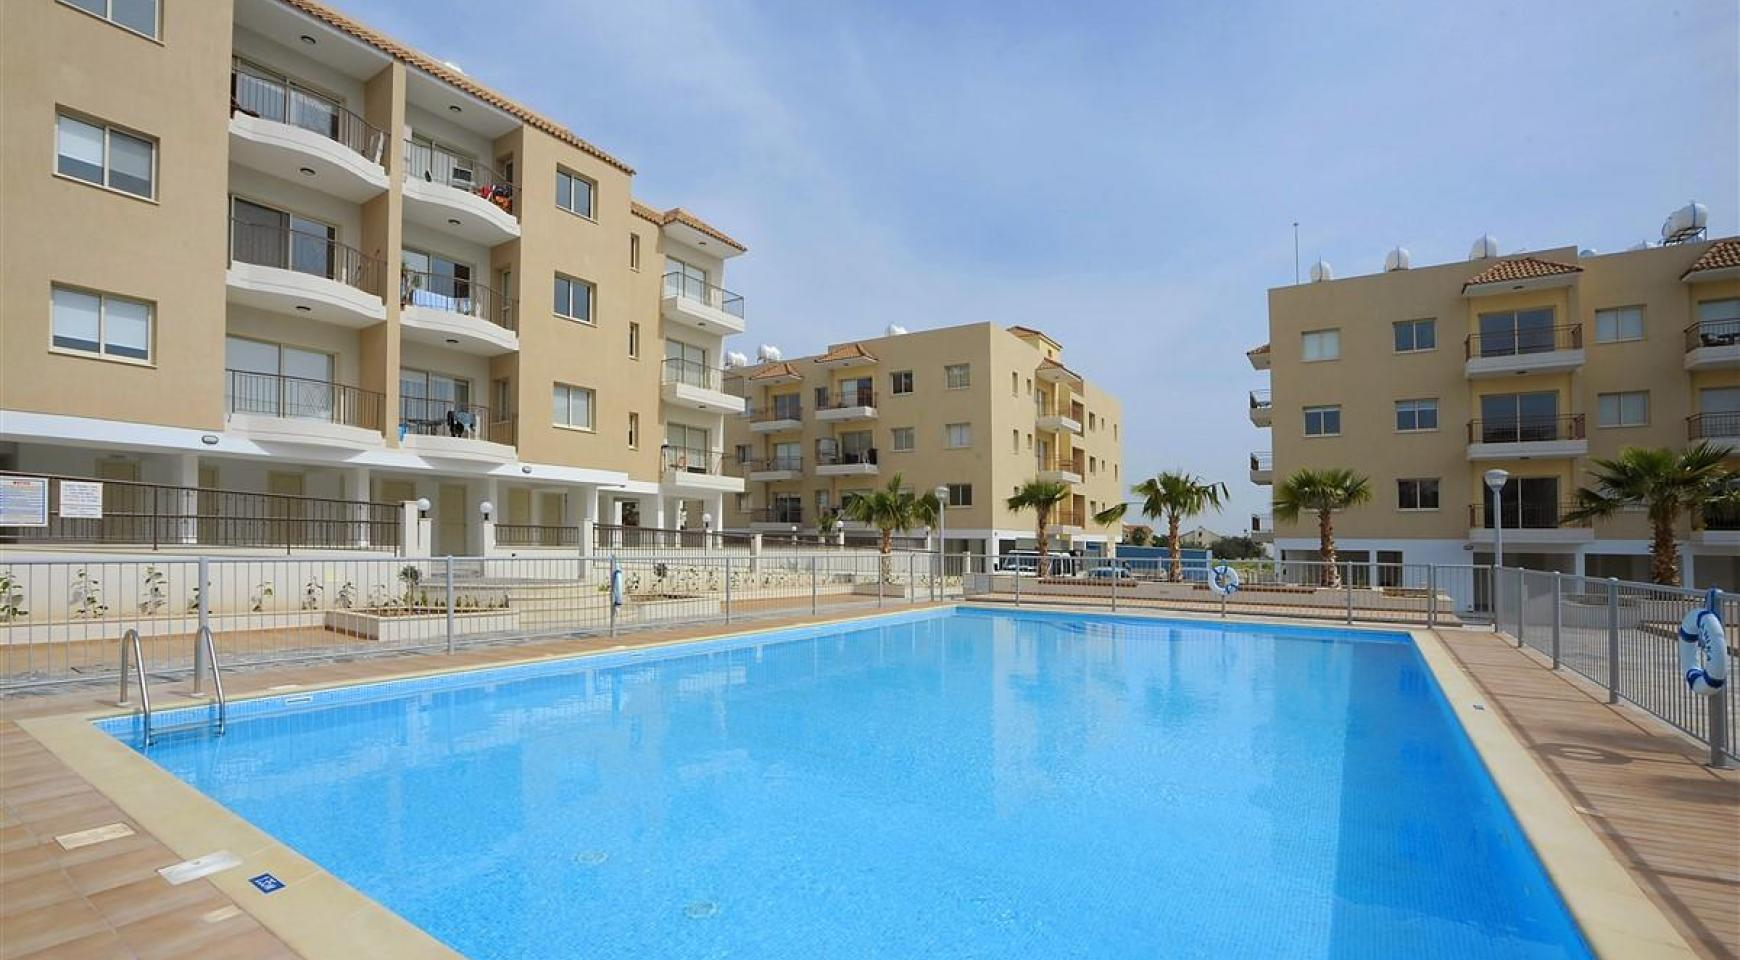 2 Bedroom Apartment in a Complex with the Swimming Pool - 3